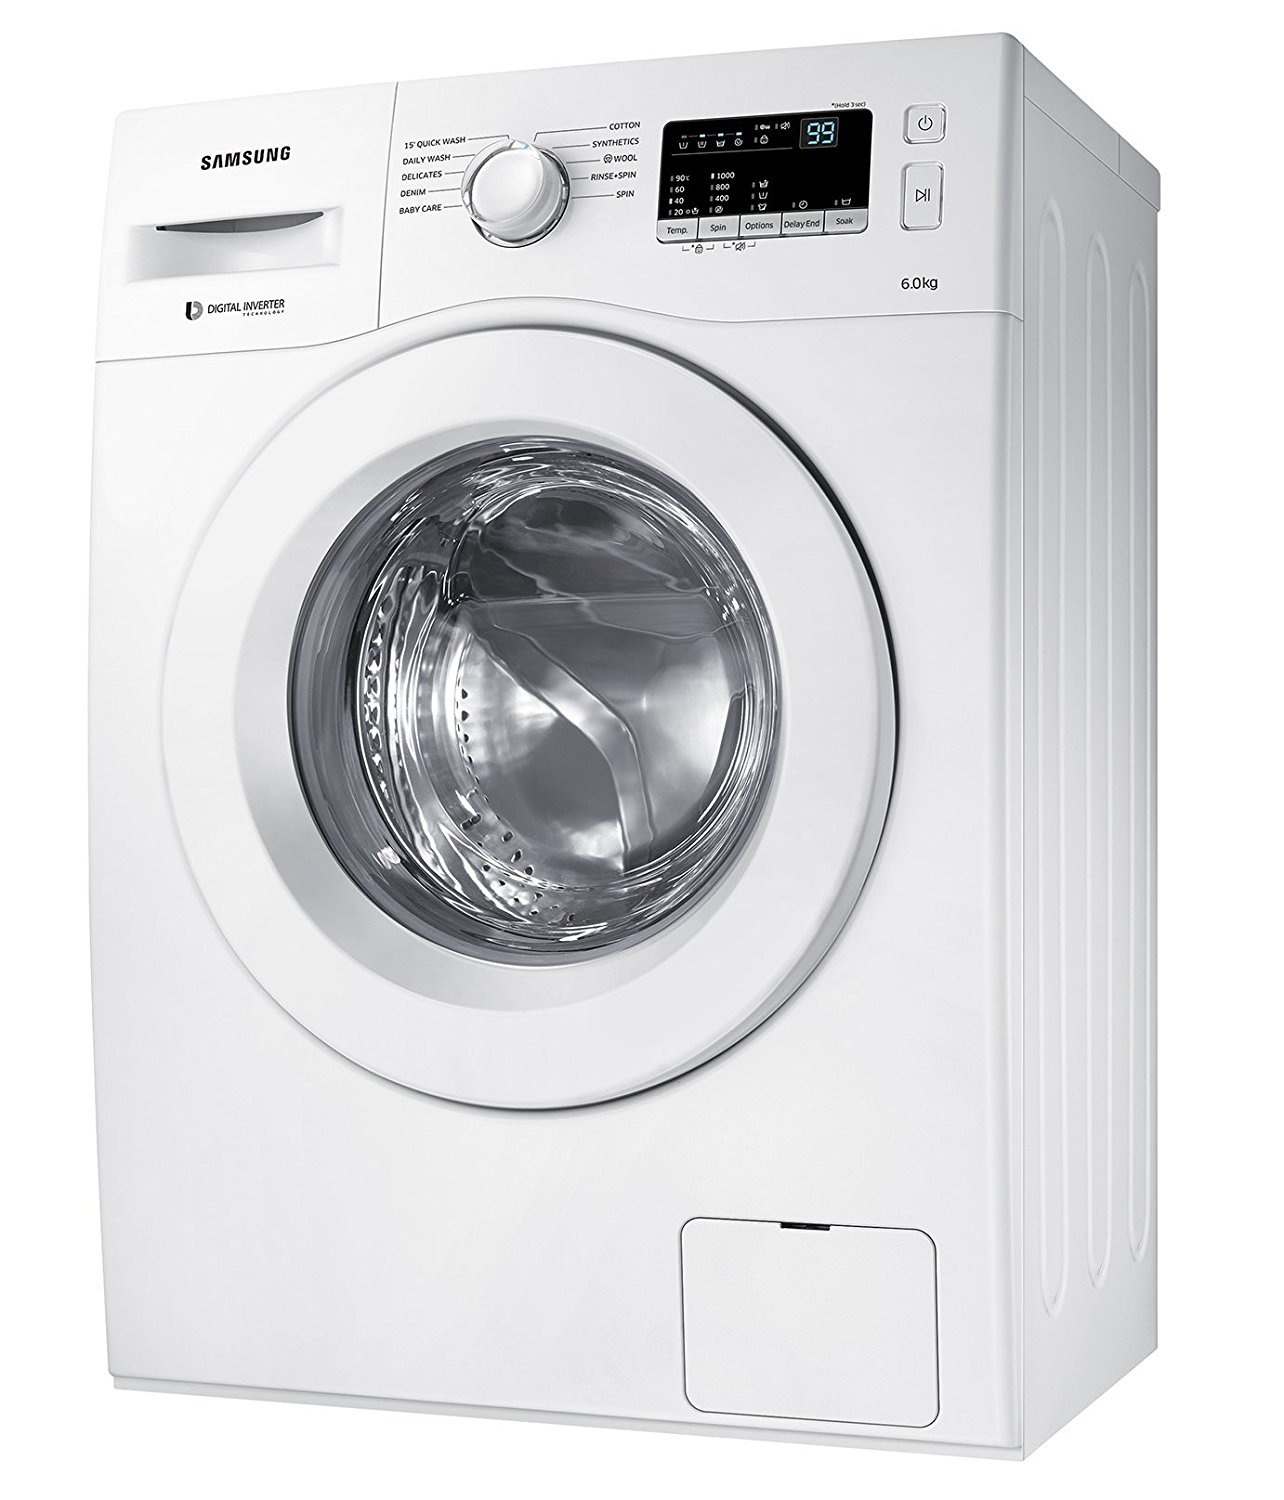 7 Best Washing Machine in India 2017 – Technosamrat